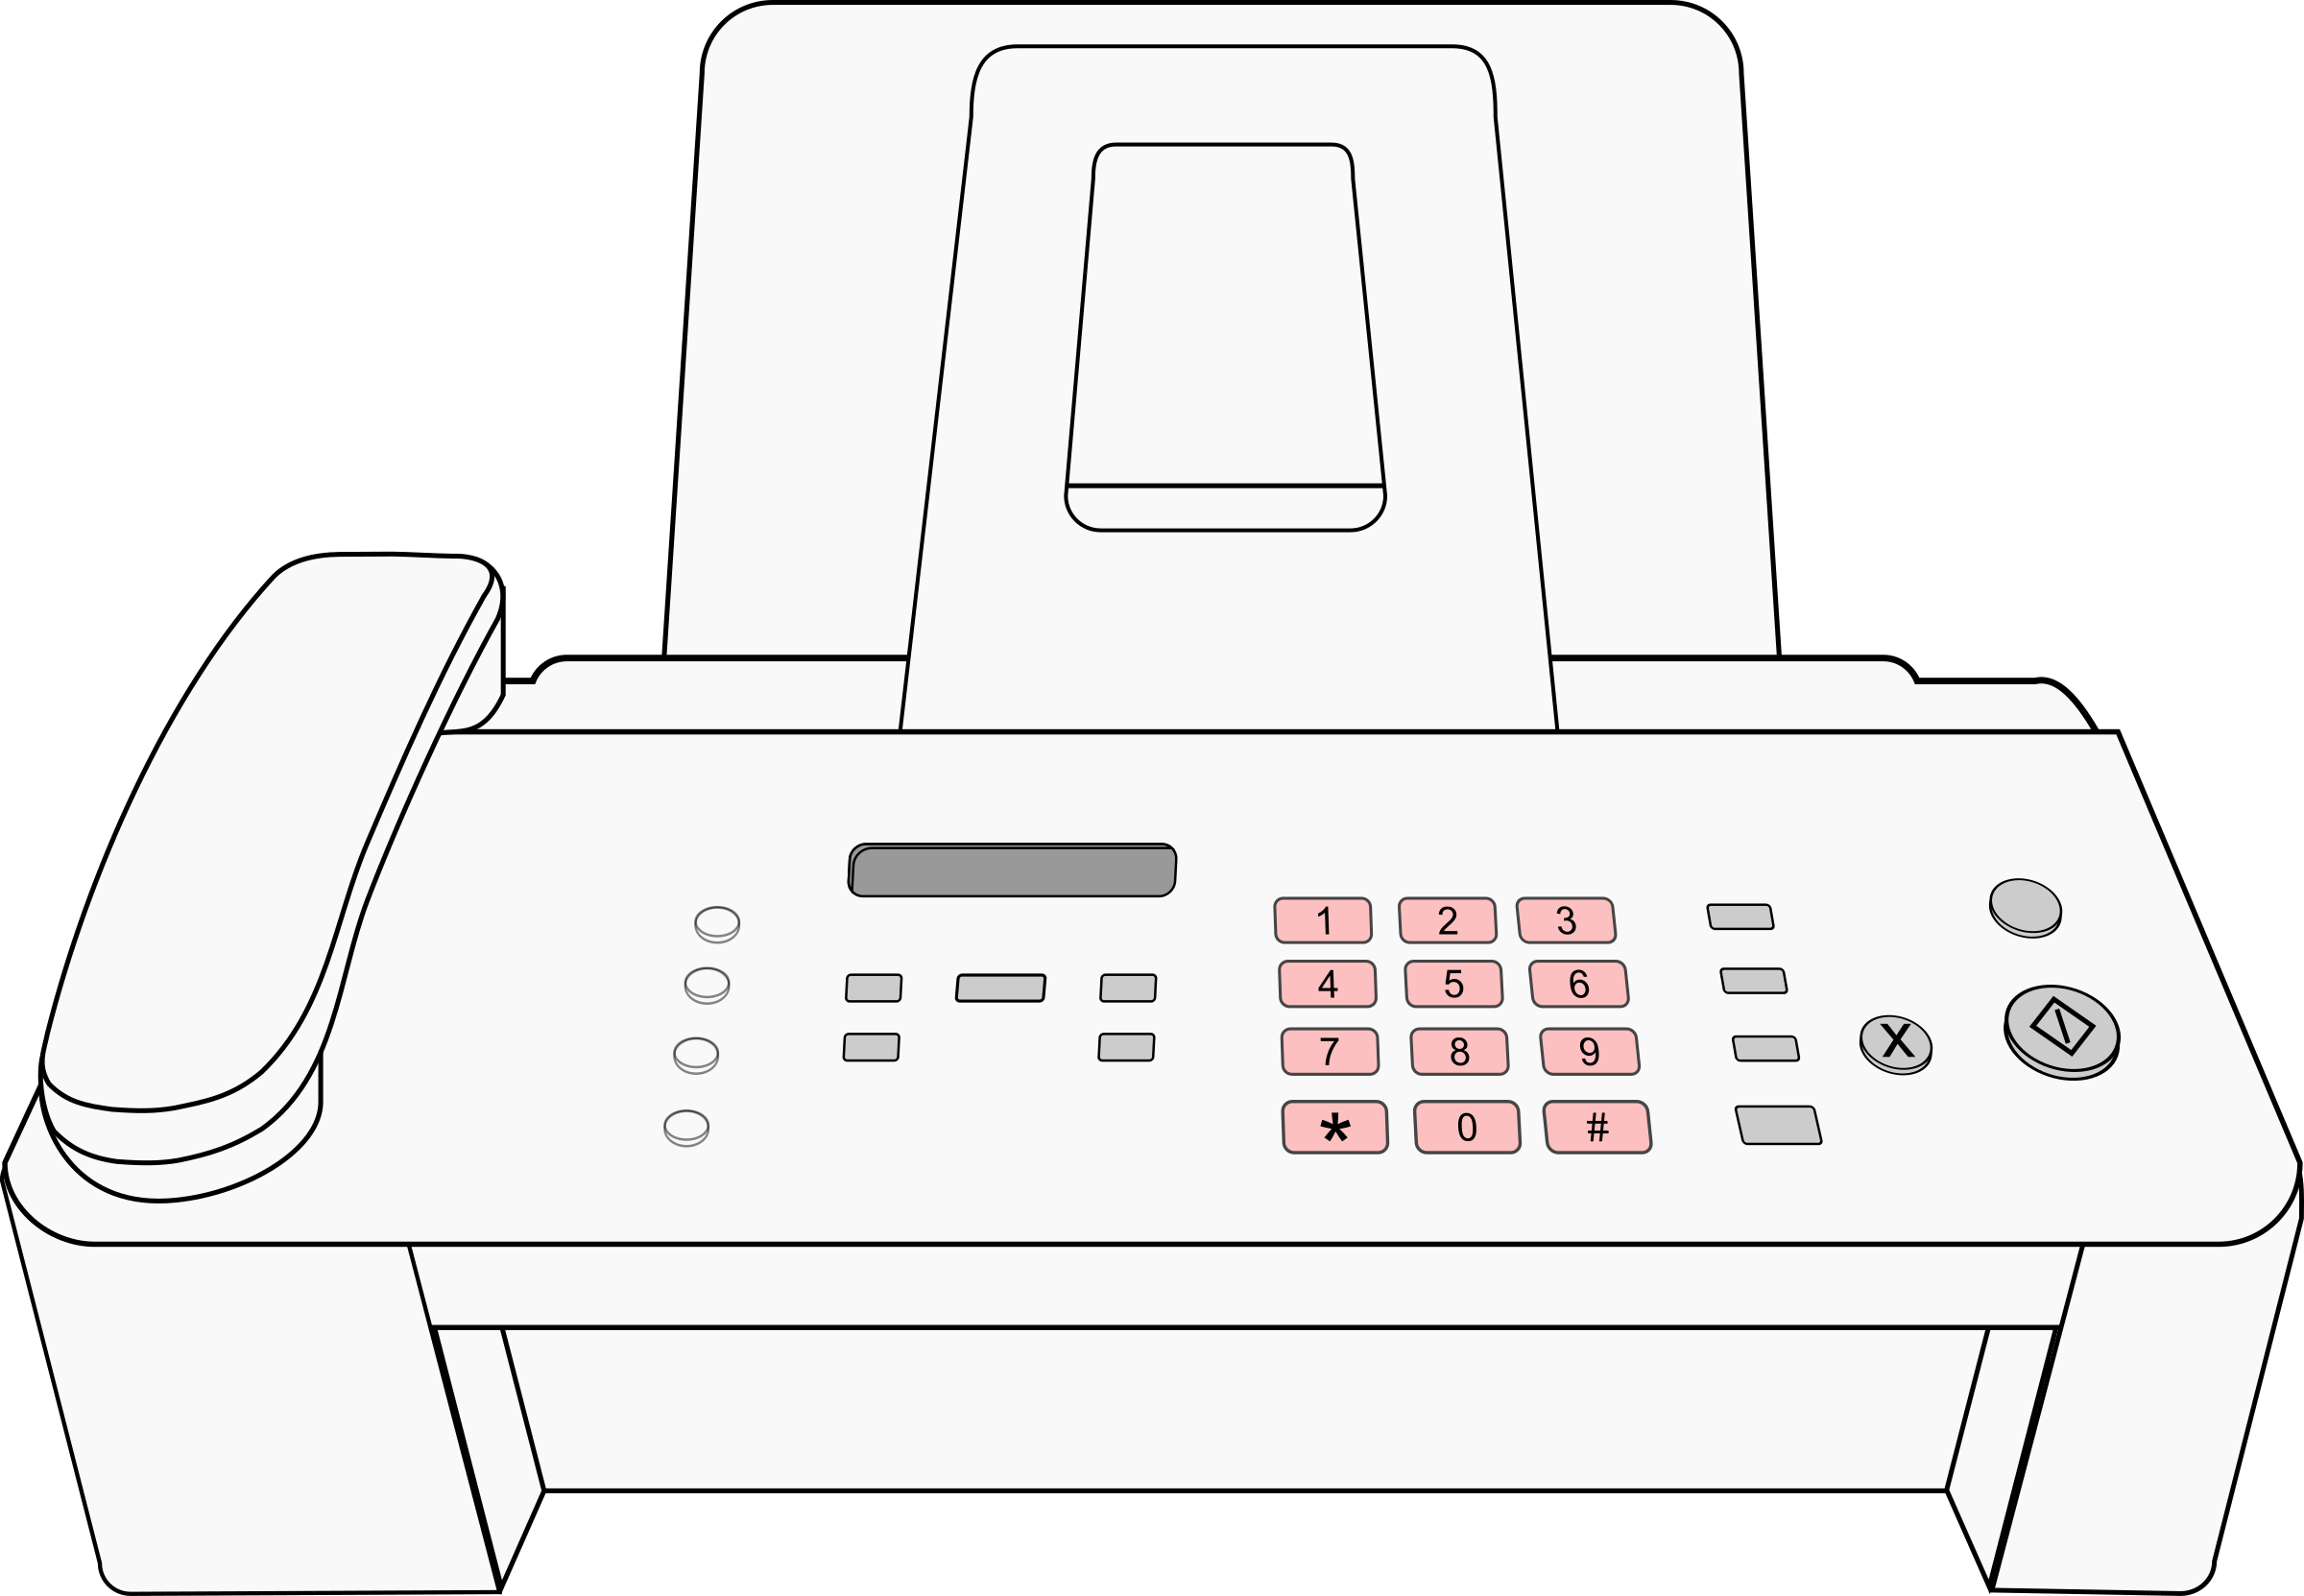 Modern Fax Machine by MatthewHenninger